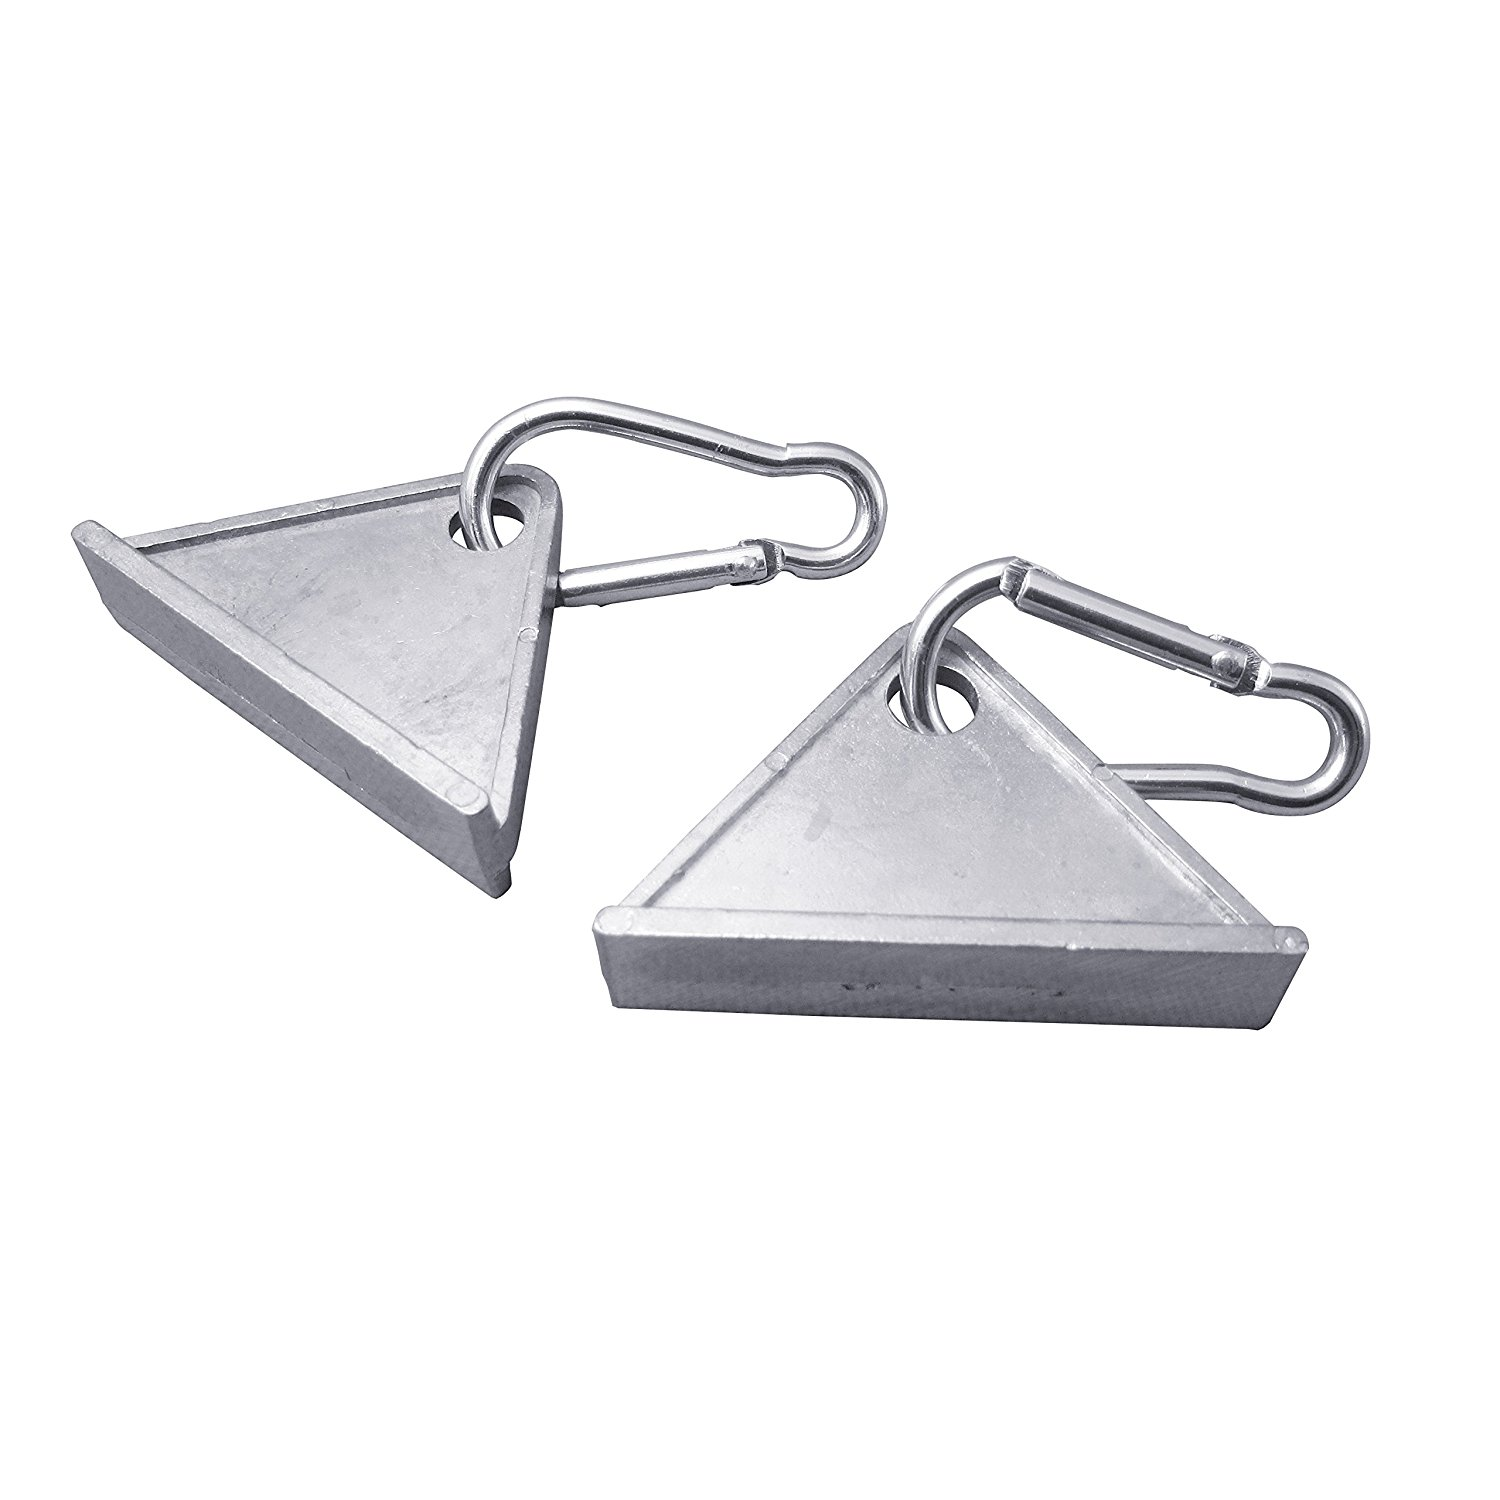 Boeray Metal Hanger Hook Clip Clamp for Aluminum Extrusion with Profile 2020 20x20mm Slot 6mm 4pcs